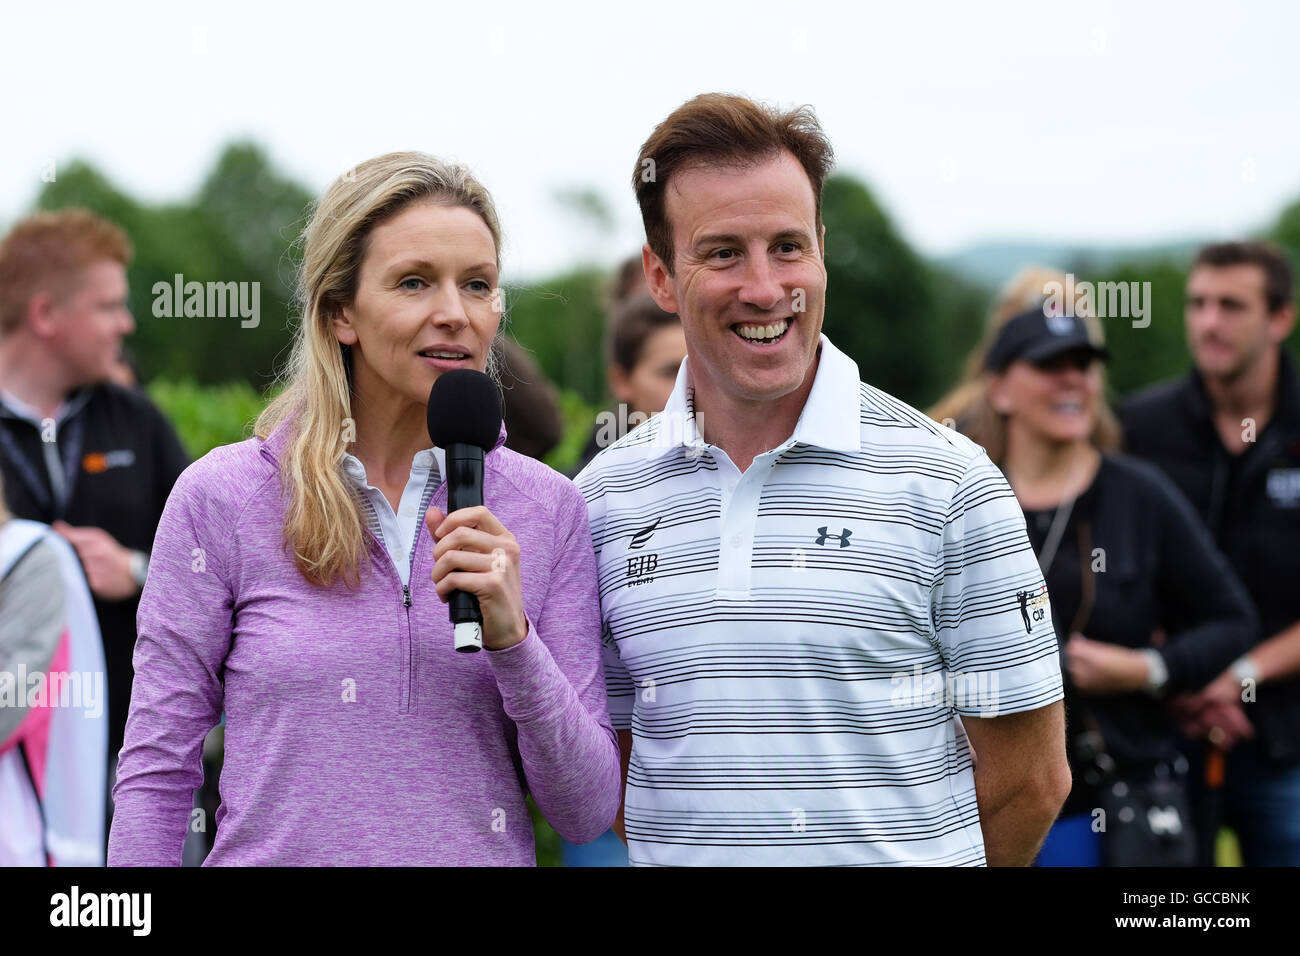 Celtic Manor, Newport, Wales - Saturday 9th July 2016 - The Celebrity Cup golf competition host Di Dougherty introduces - Stock Image